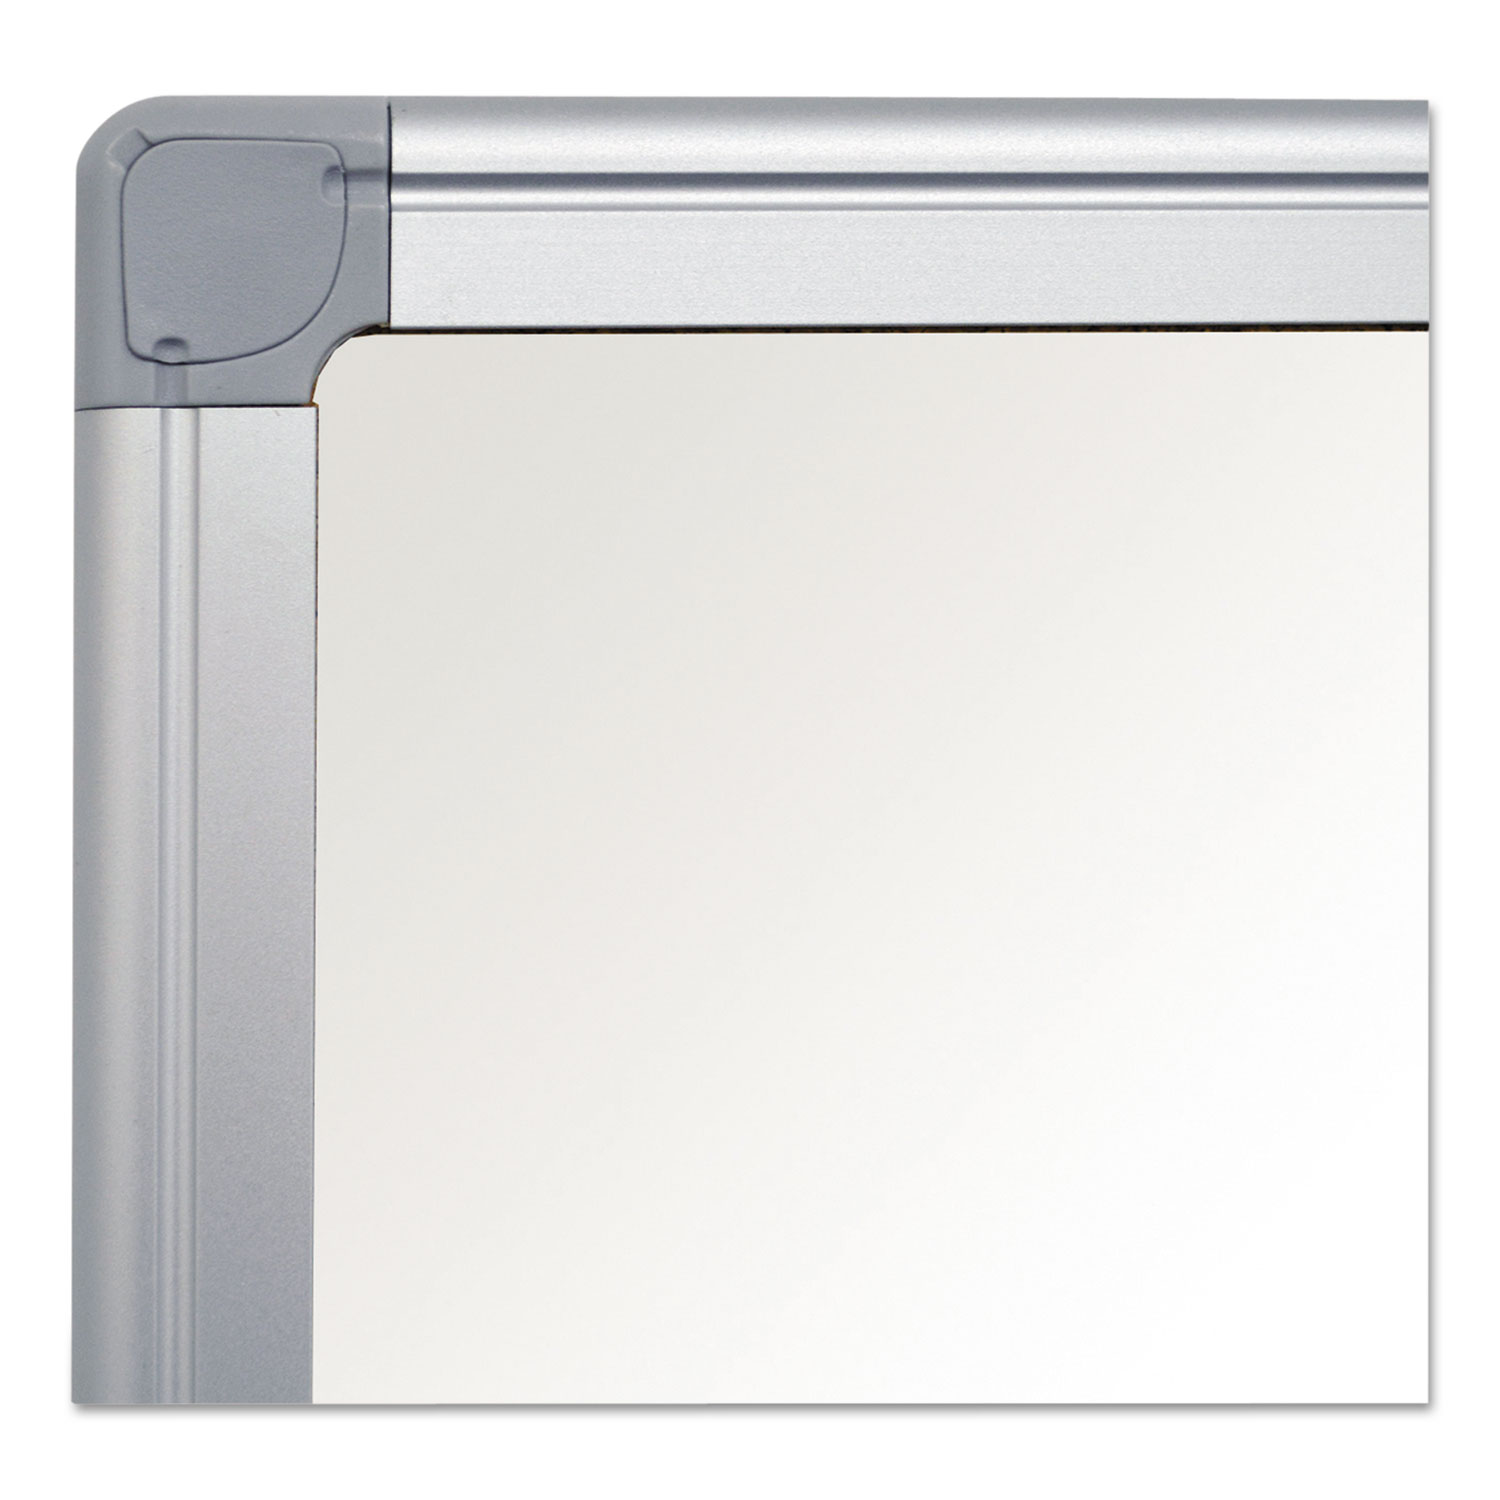 Earth Ceramic Dry Erase Board by MasterVision® BVCCR0820030 ...